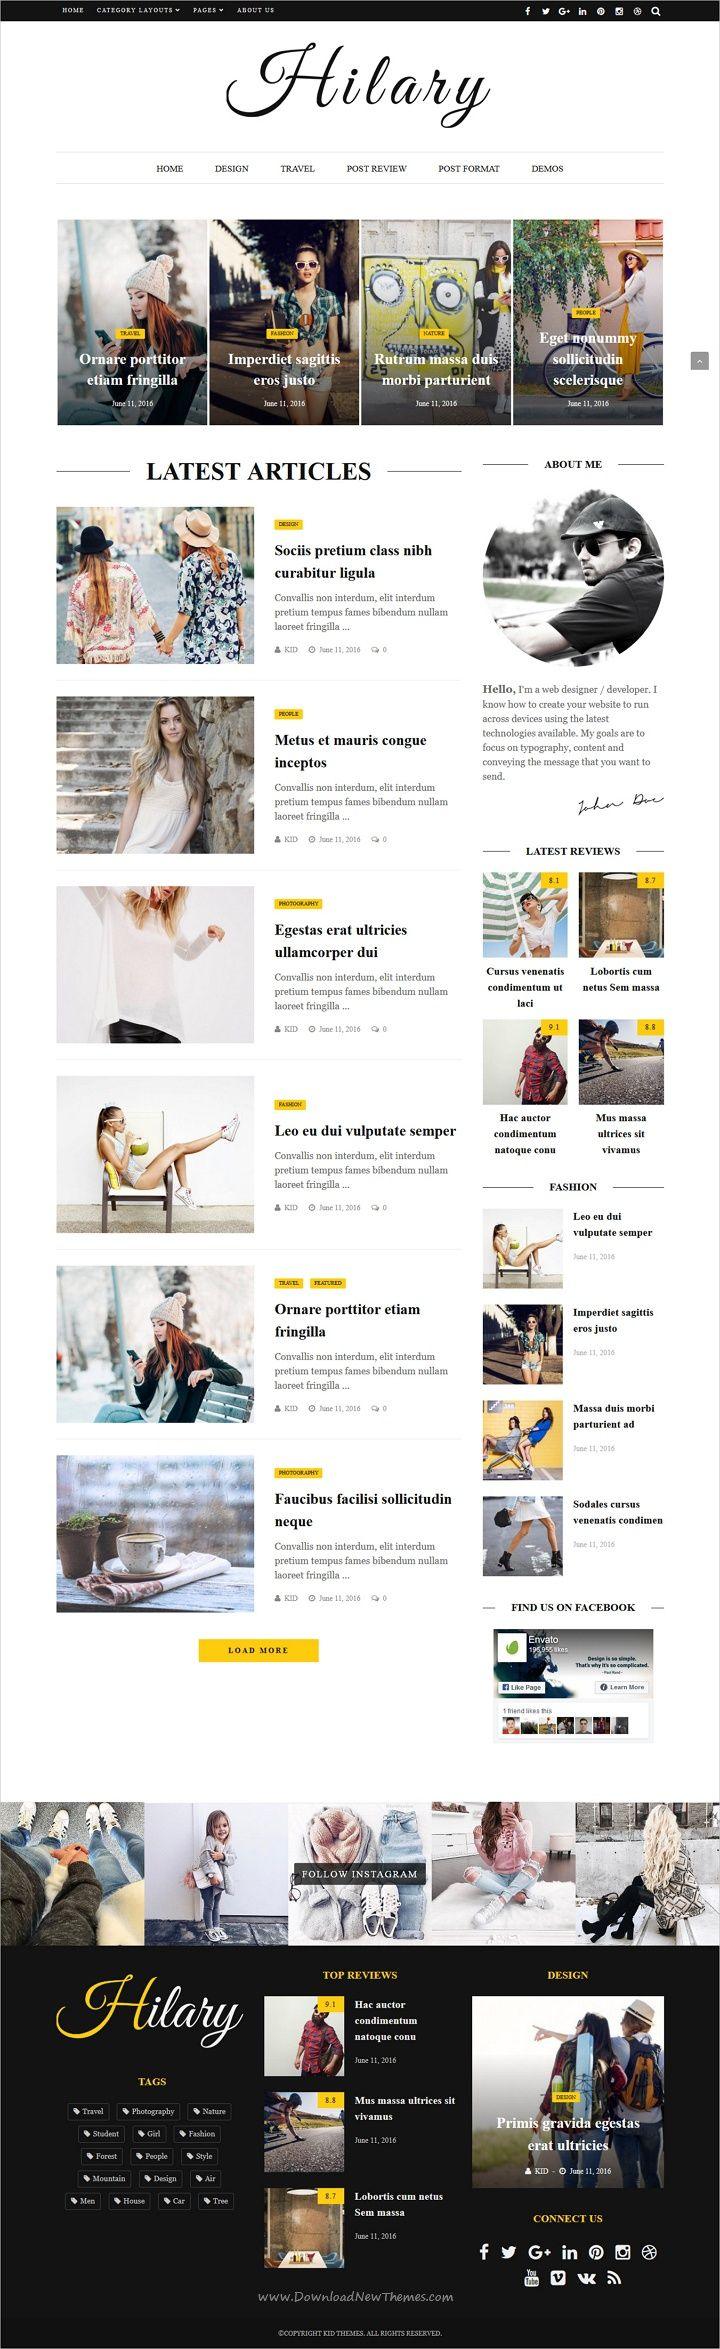 Hilary is premium flat, clean, super flexible #WordPress theme for #blogideas magazine, news or blog websites with 31 unique homepage layouts download now➩  https://themeforest.net/item/hilary-fast-clean-flexible-wordpress-magazine-news-blog-theme/19078044?ref=Datasata